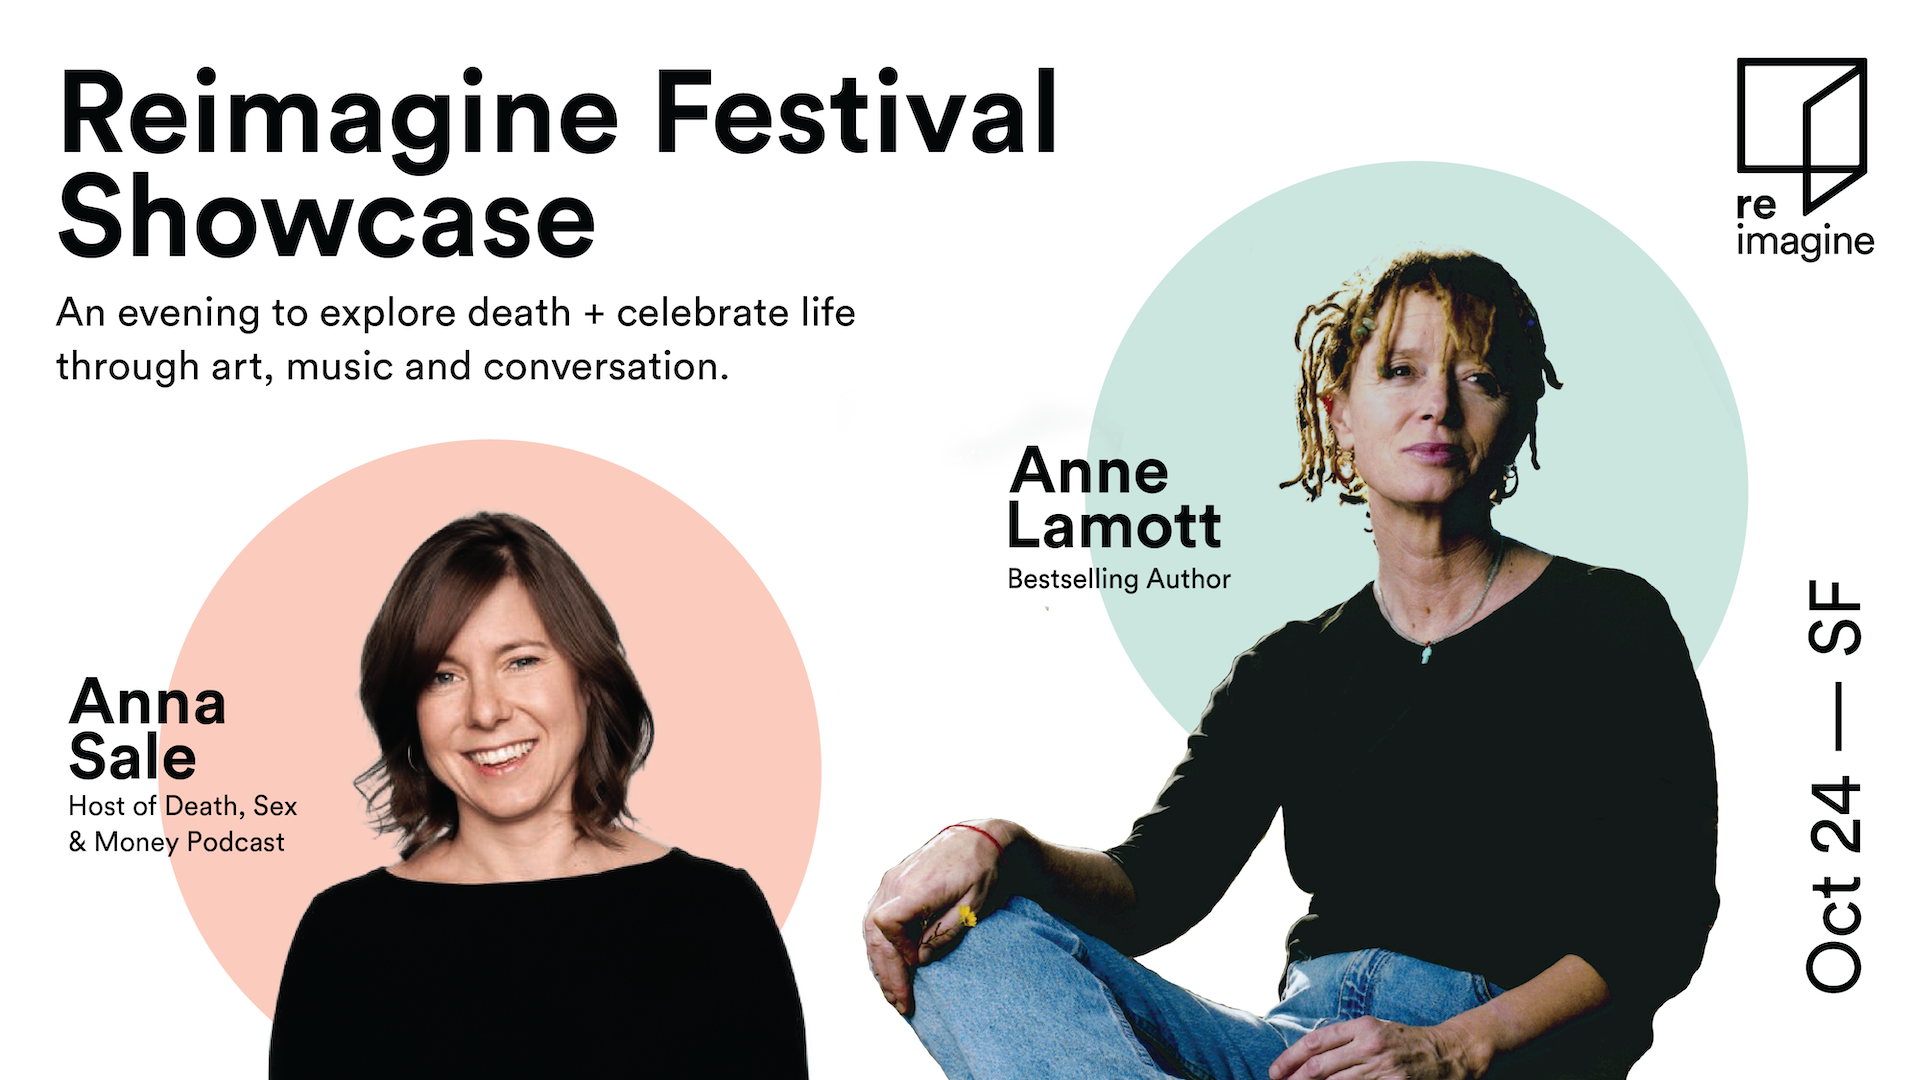 Reimagine Festival collaborators, Anna Sale and Anne Lamott